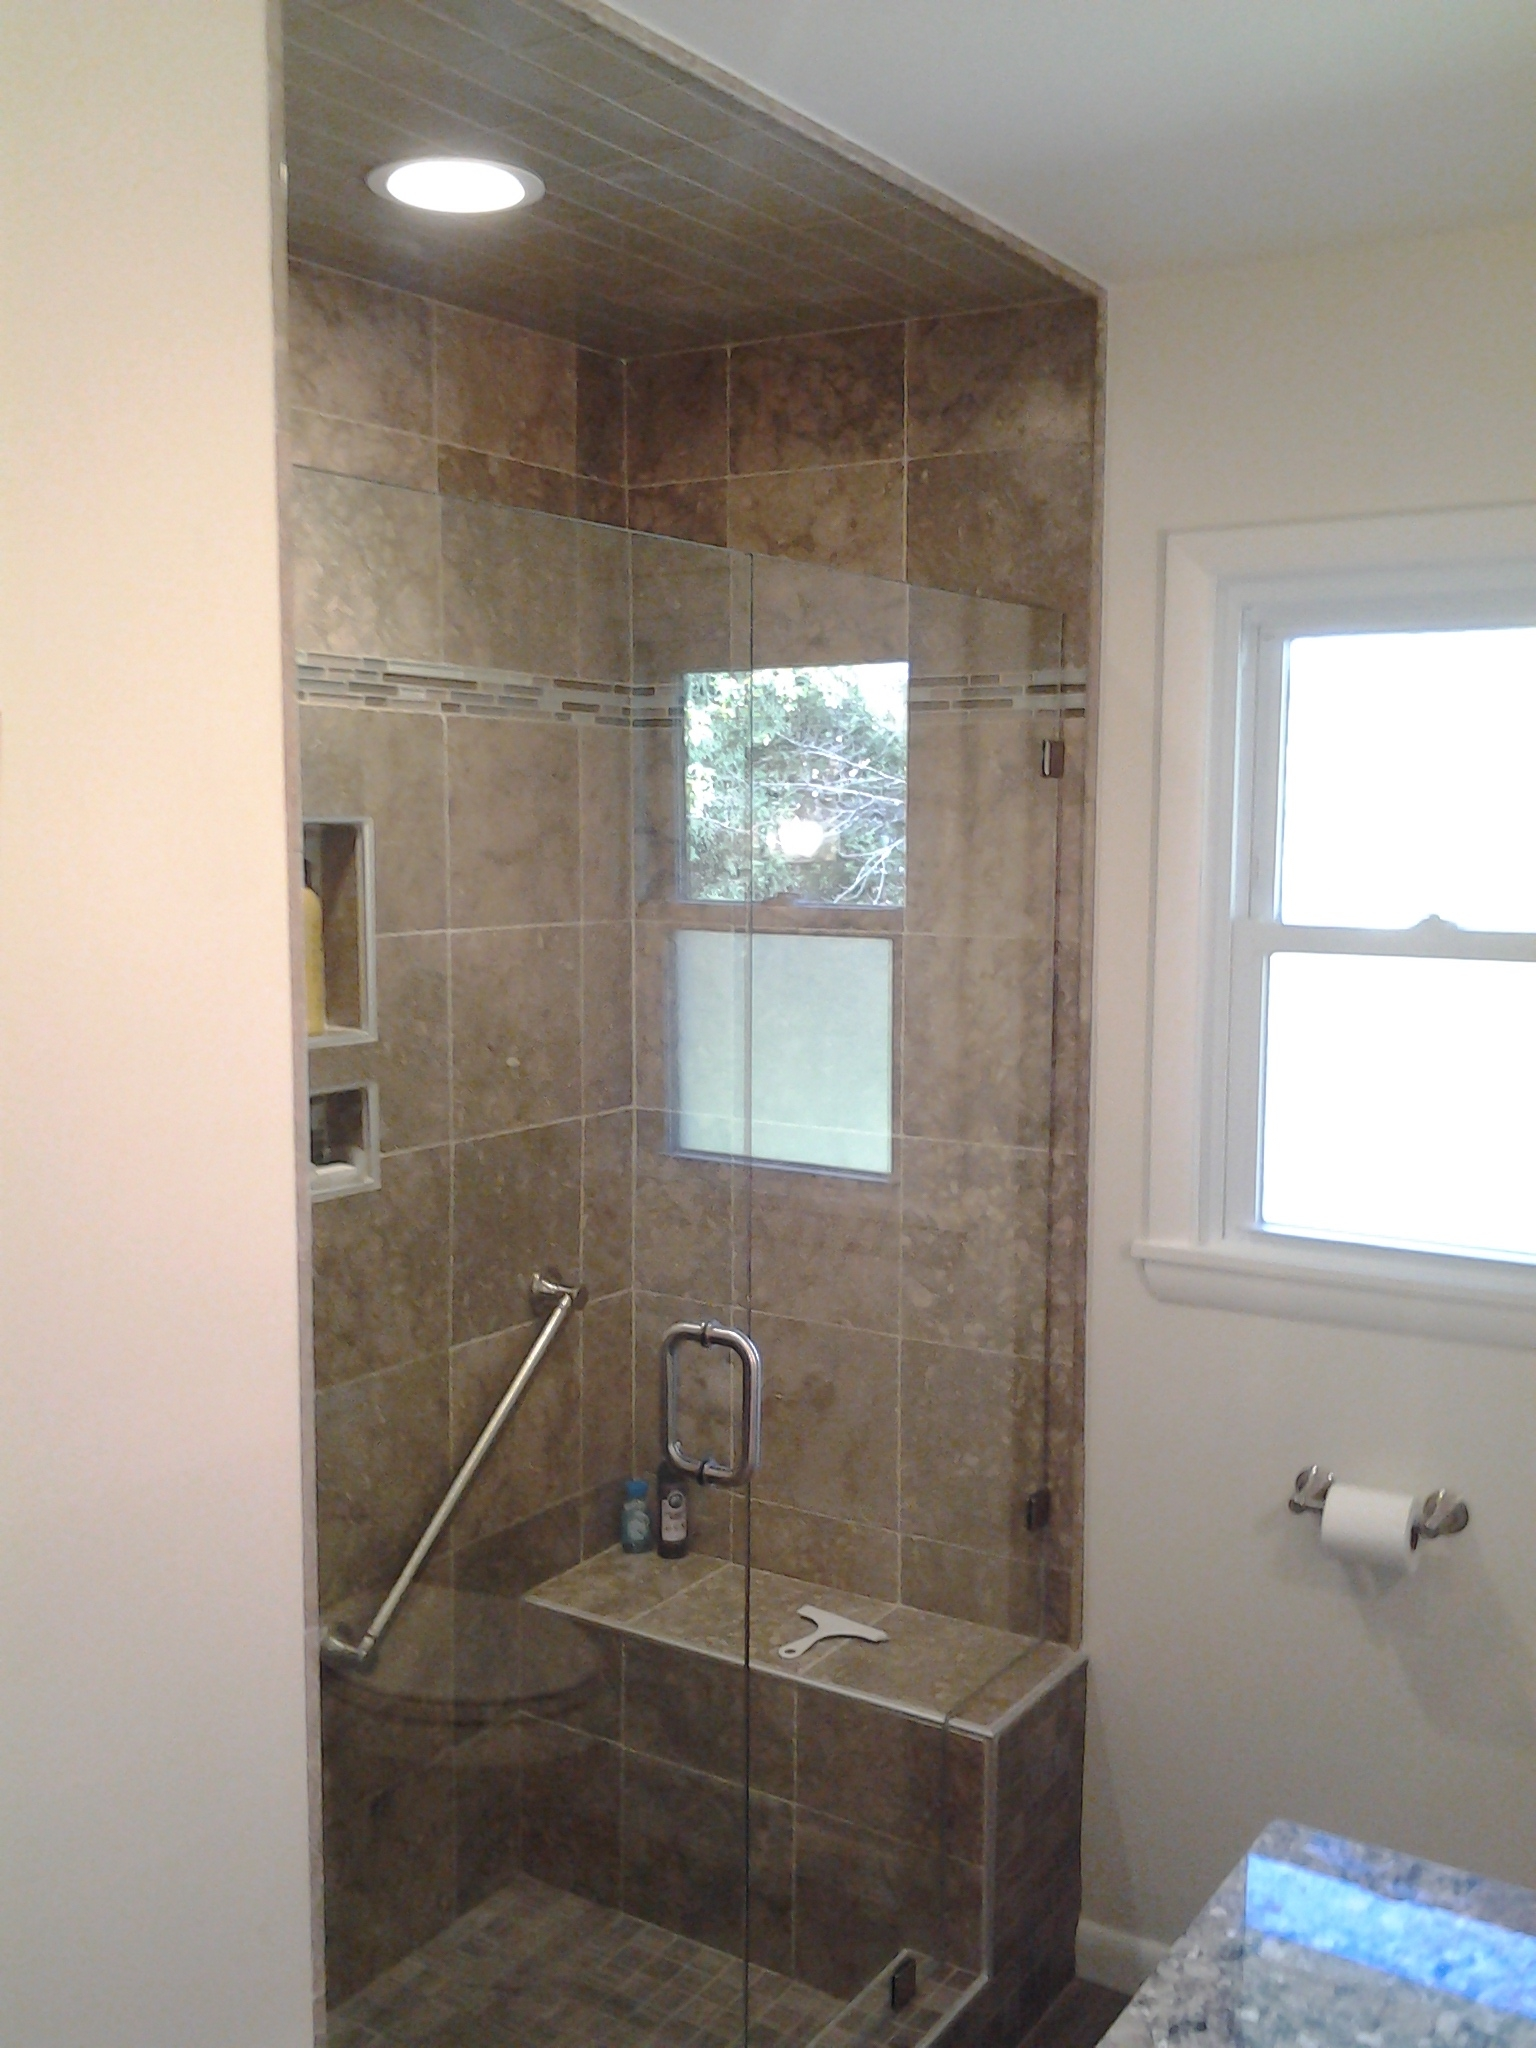 Bathroom Remodel - Custom Tile Shower